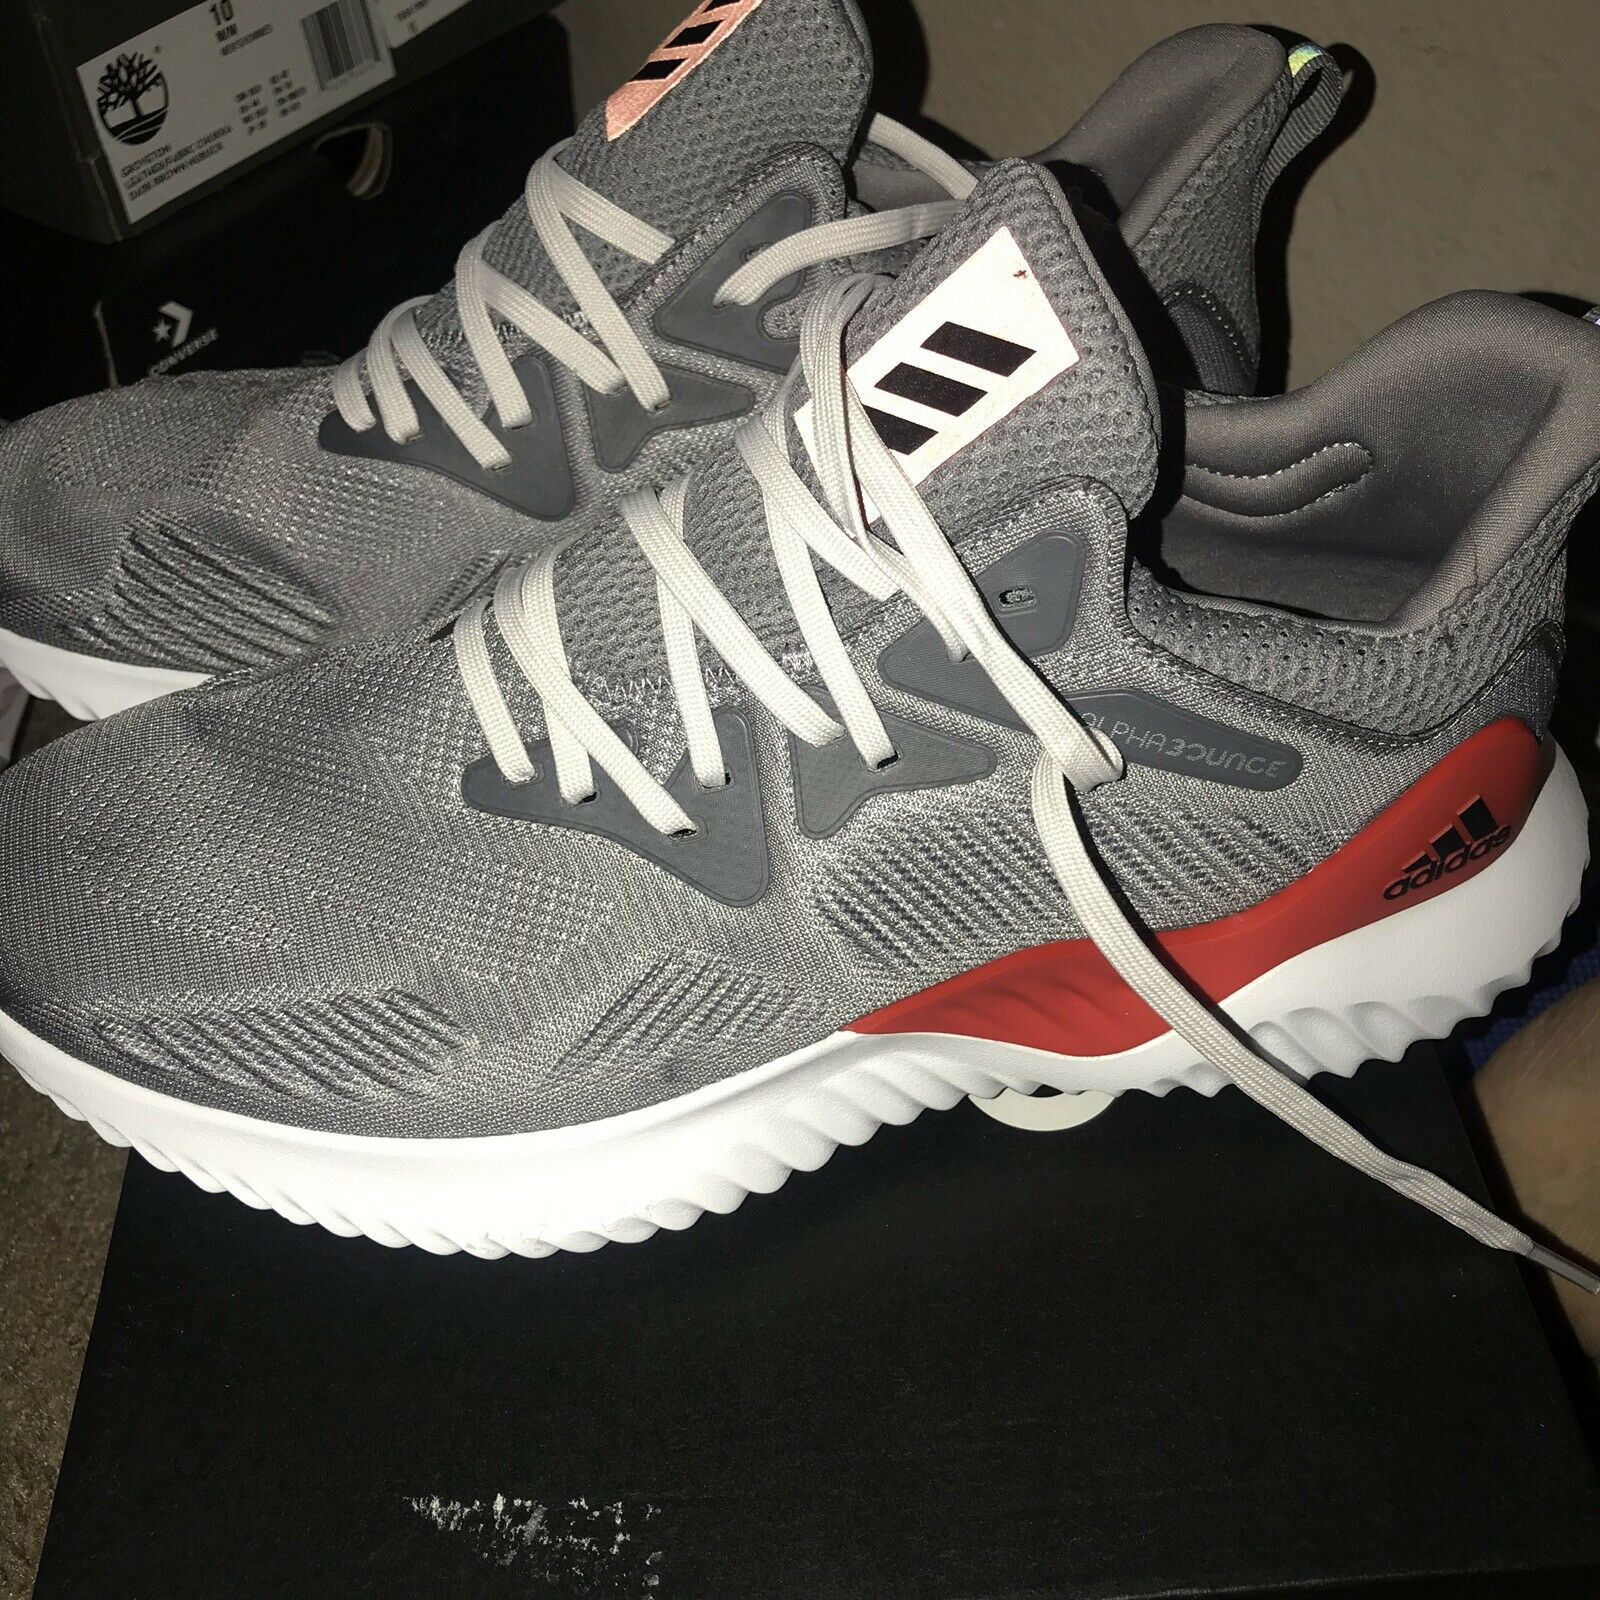 Men Adidas Alphabounce Beyond M Running shoes Size 10 grey boost white red